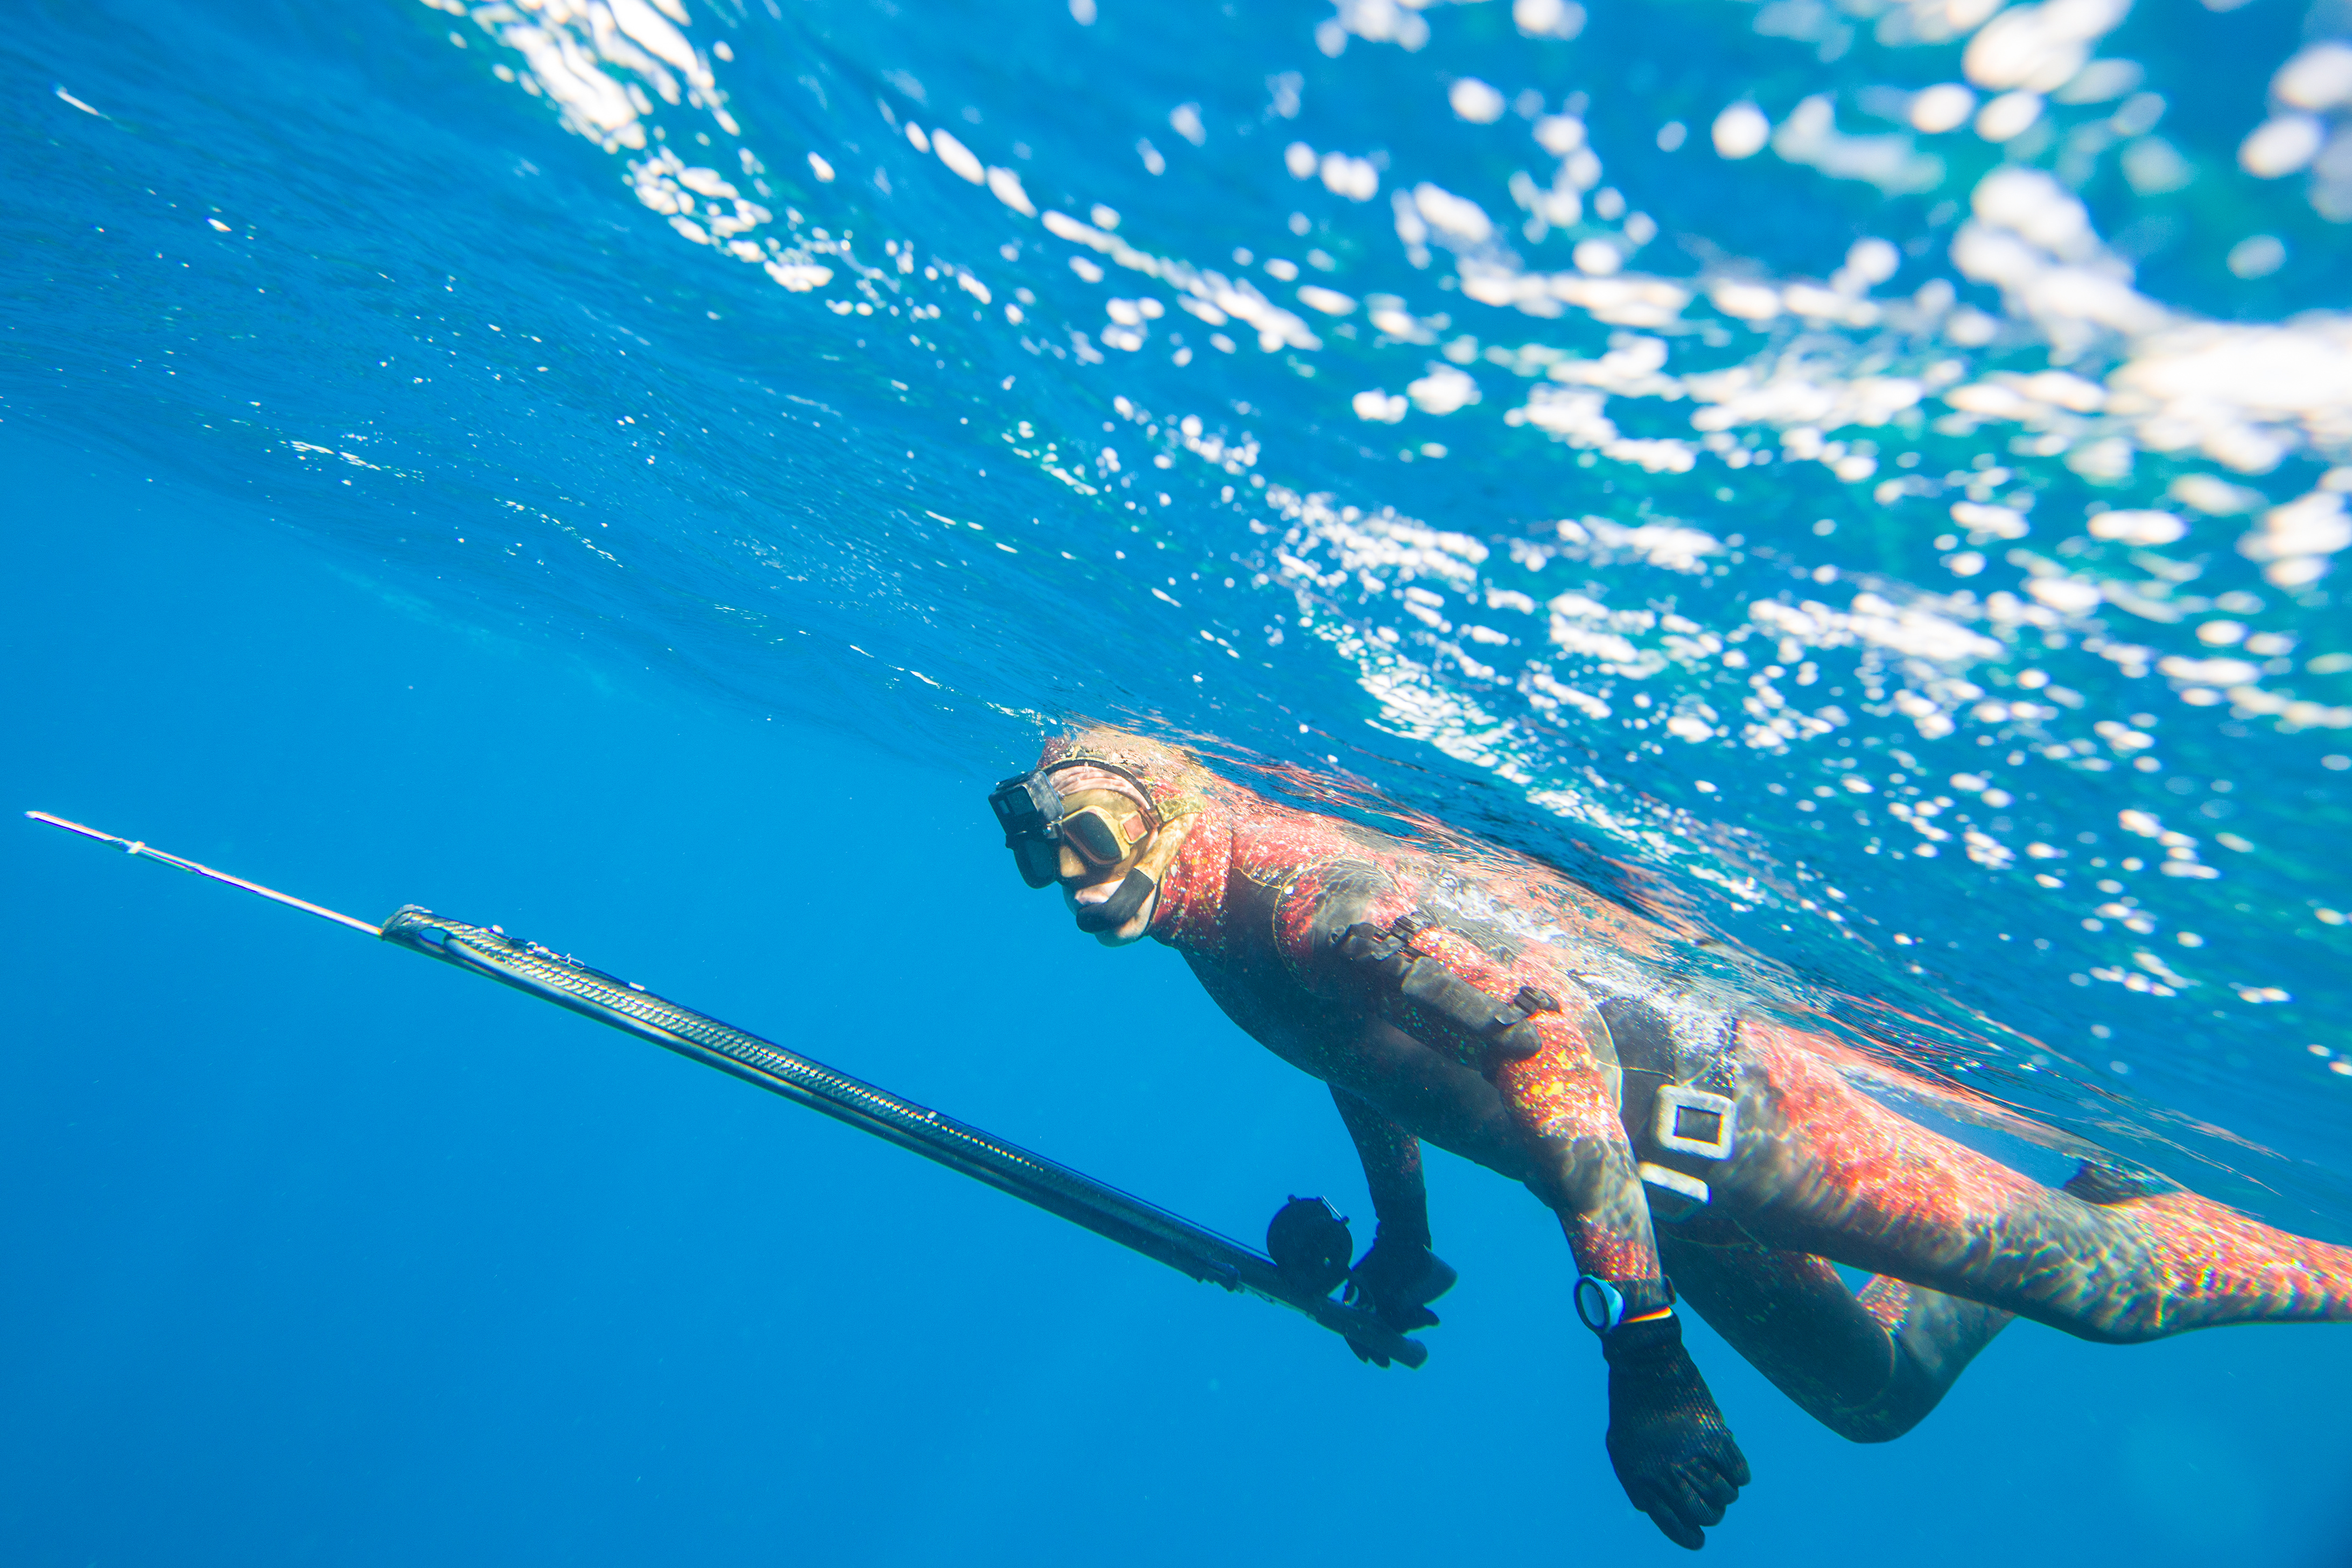 spearfisher rests on the surface of the sea before diving